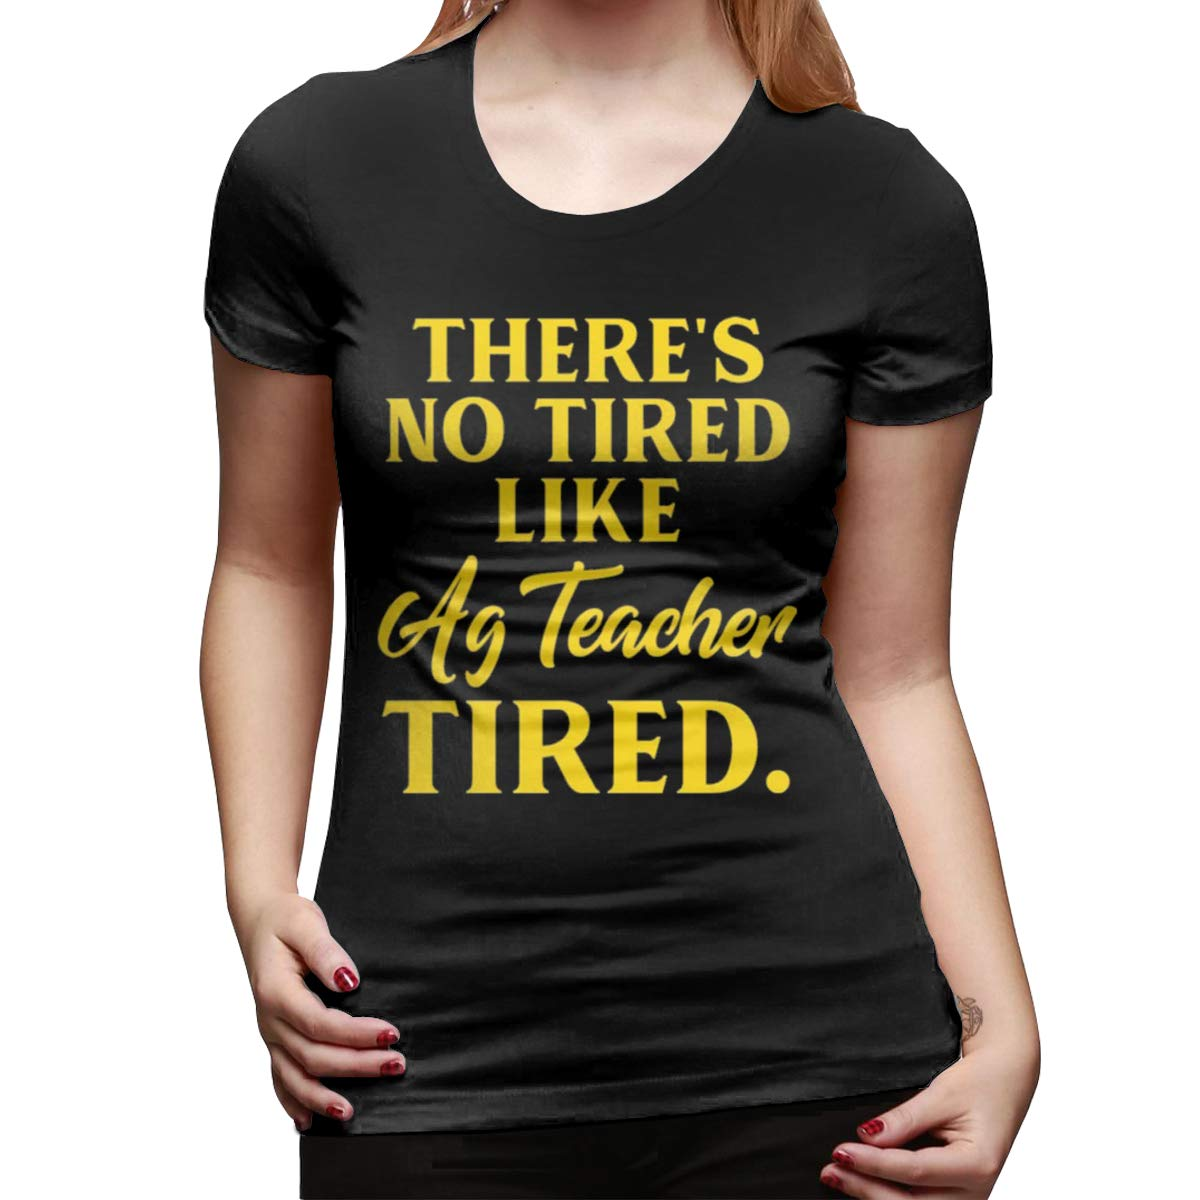 Uriayloer Theres No Tired Like Ag Tea Tired Tee Fashion Tshirt